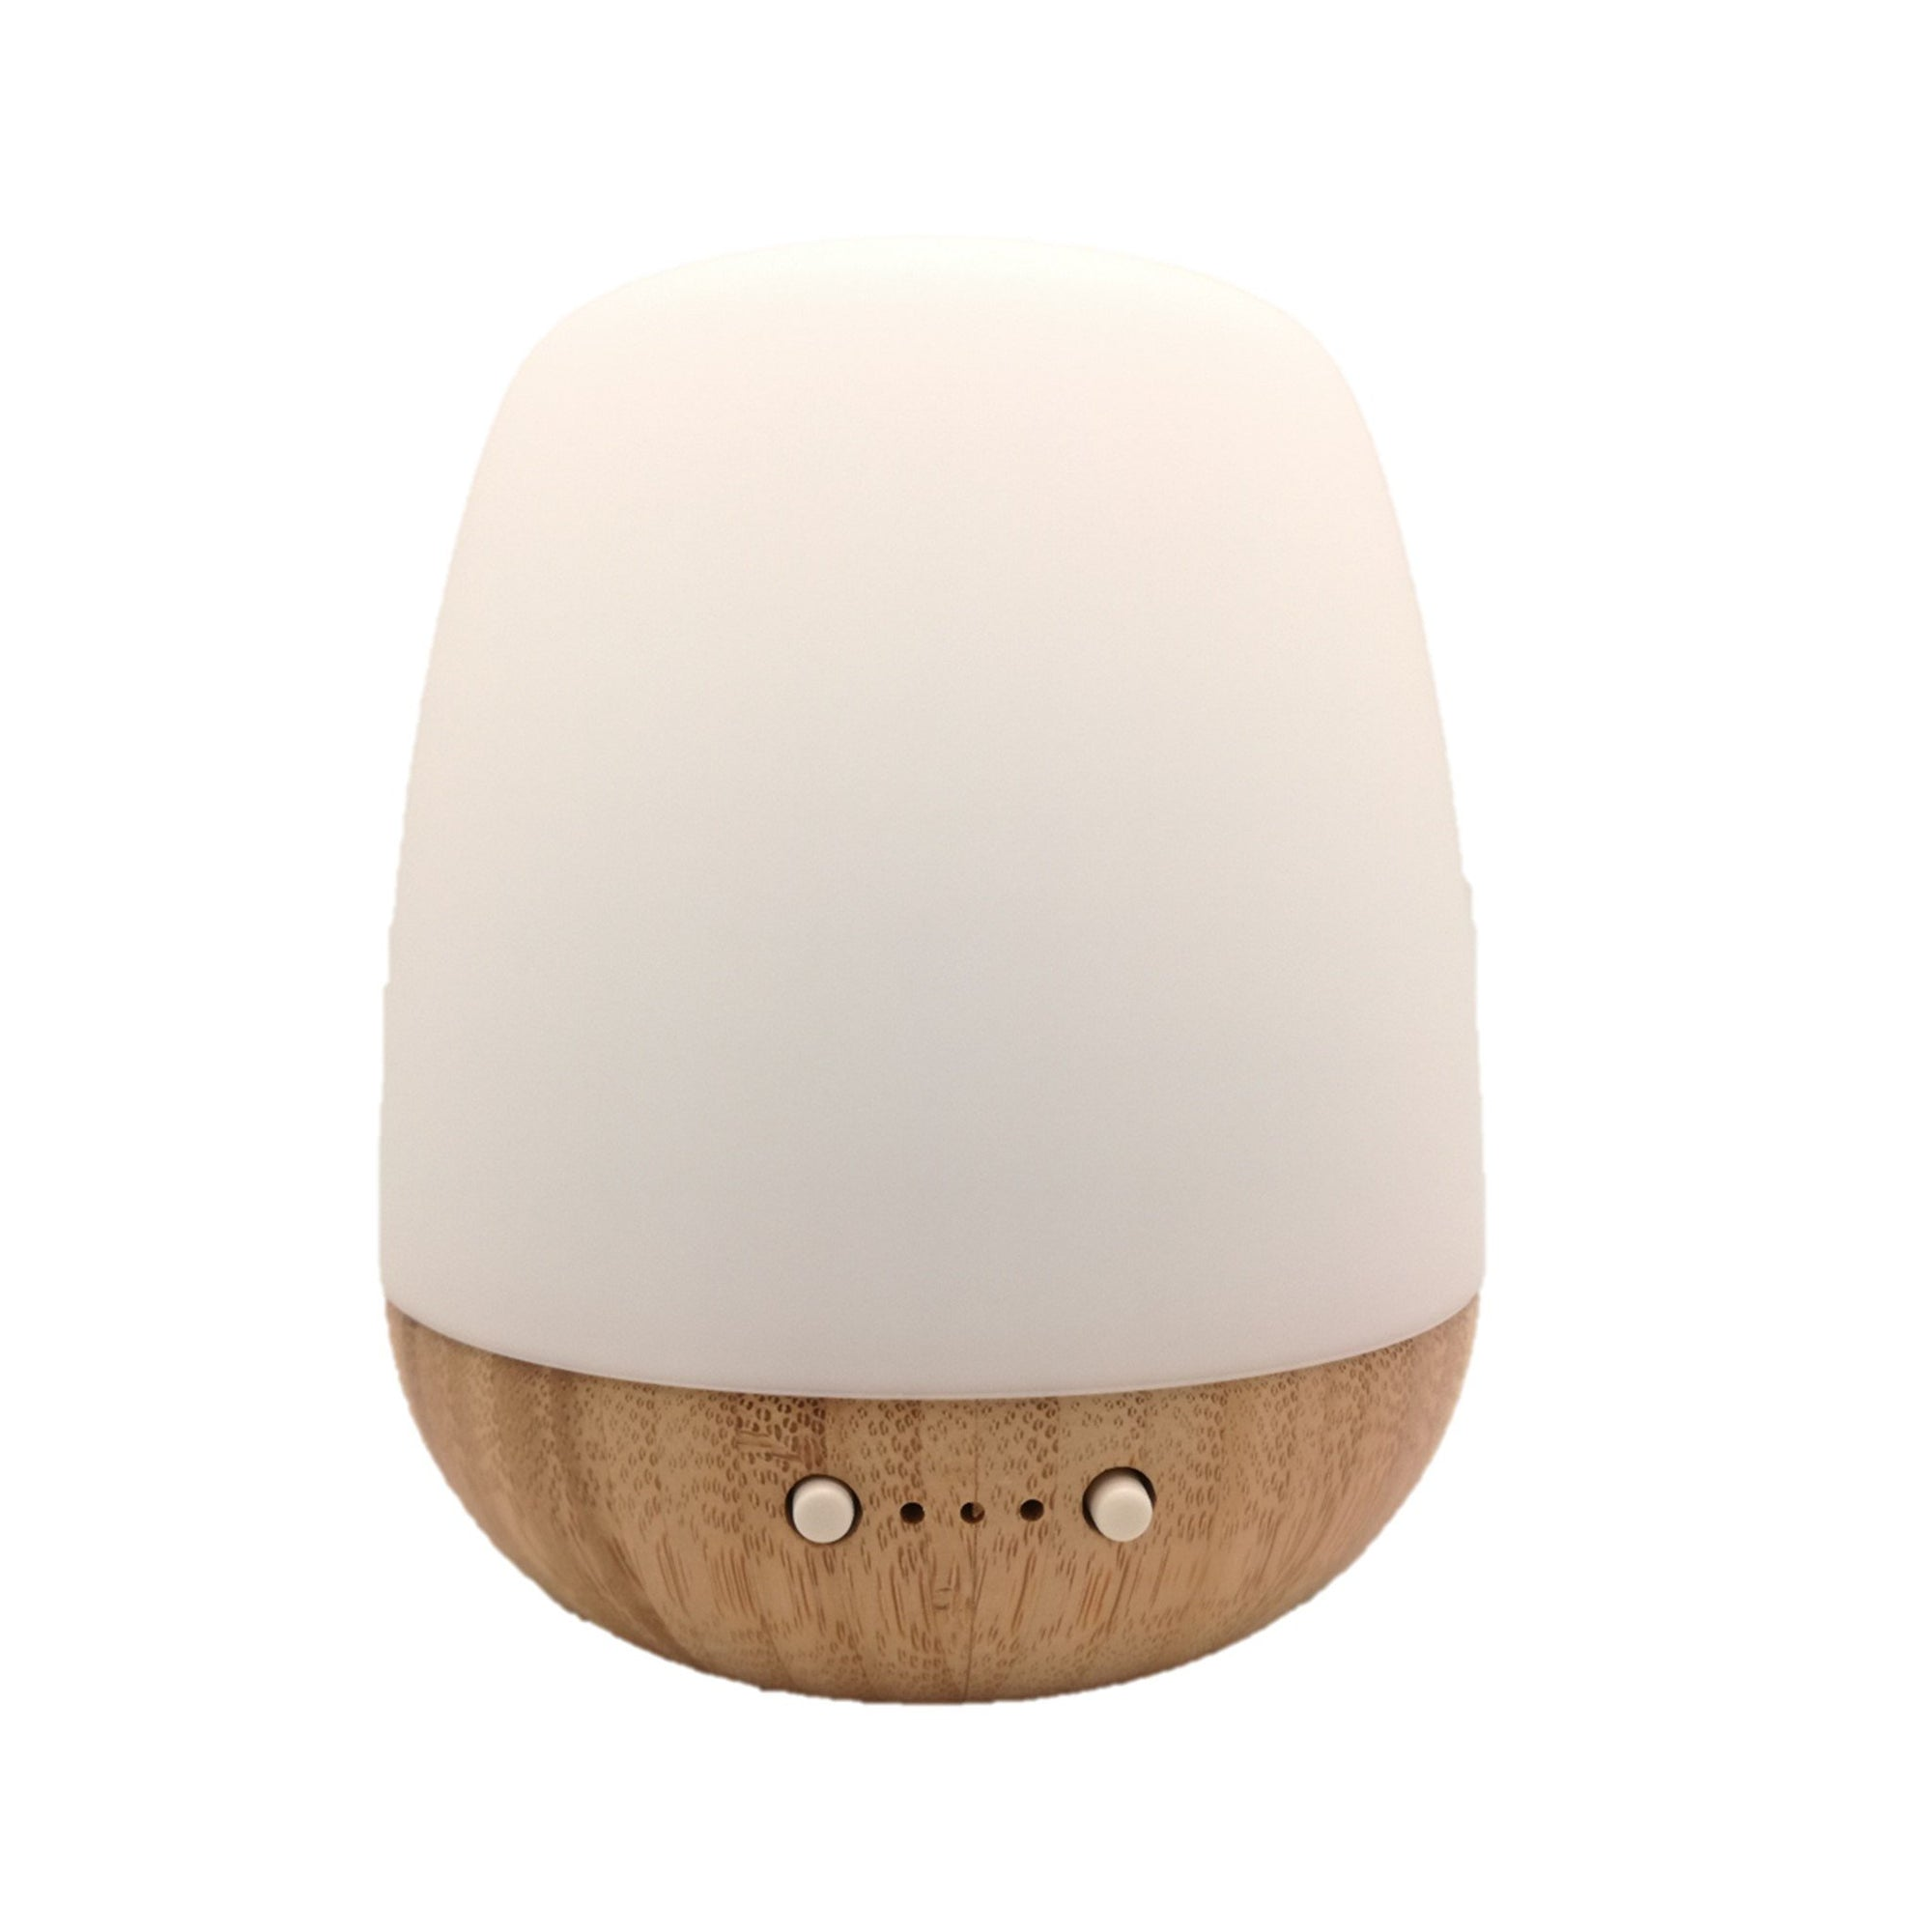 Casa Bamboo Ultrasonic Oil Diffuser